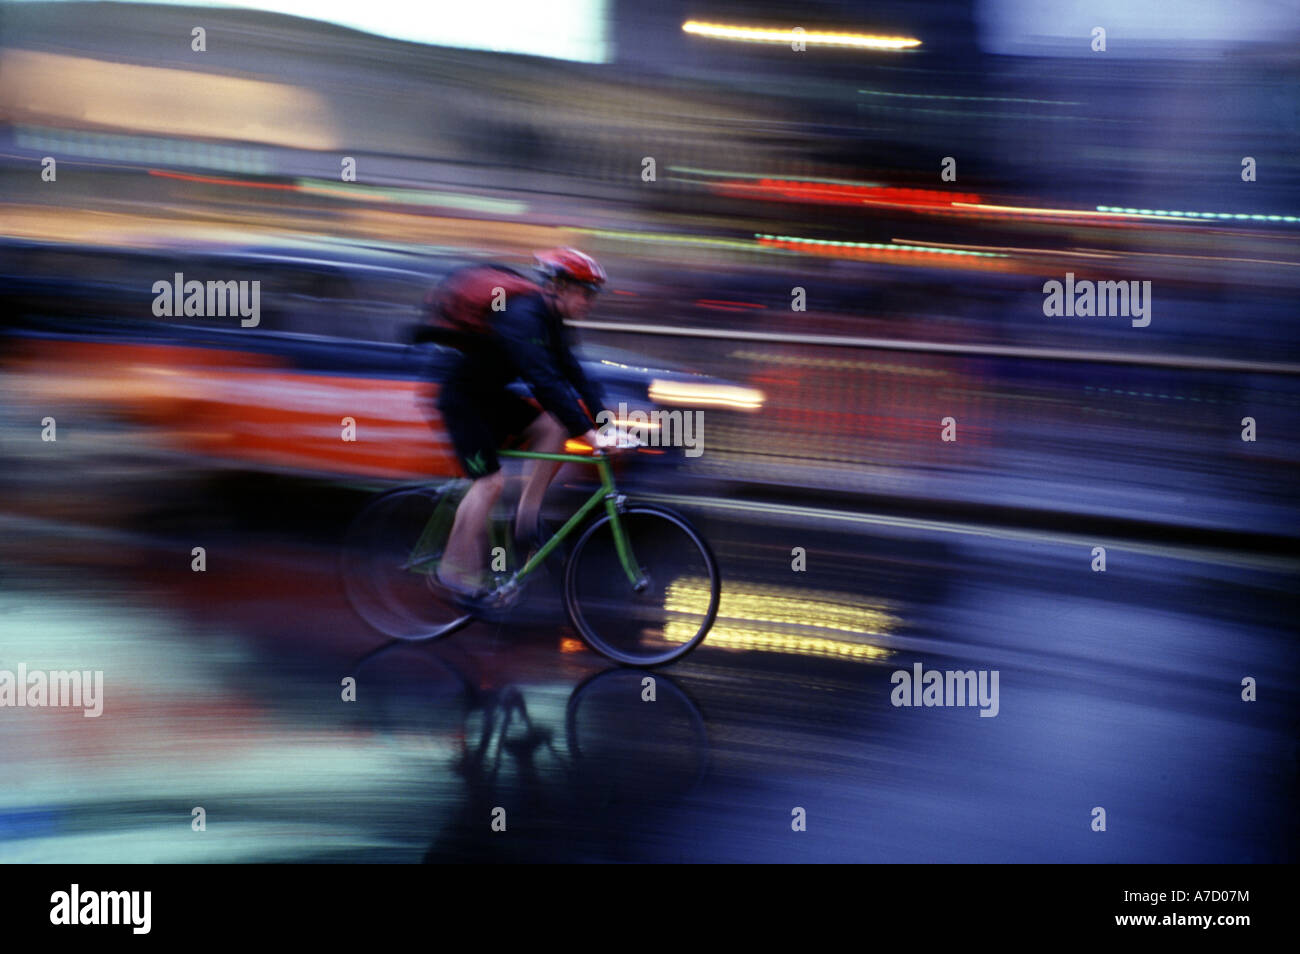 Picadilly Circus, Cyclist In The Rain, Blurred - Stock Image